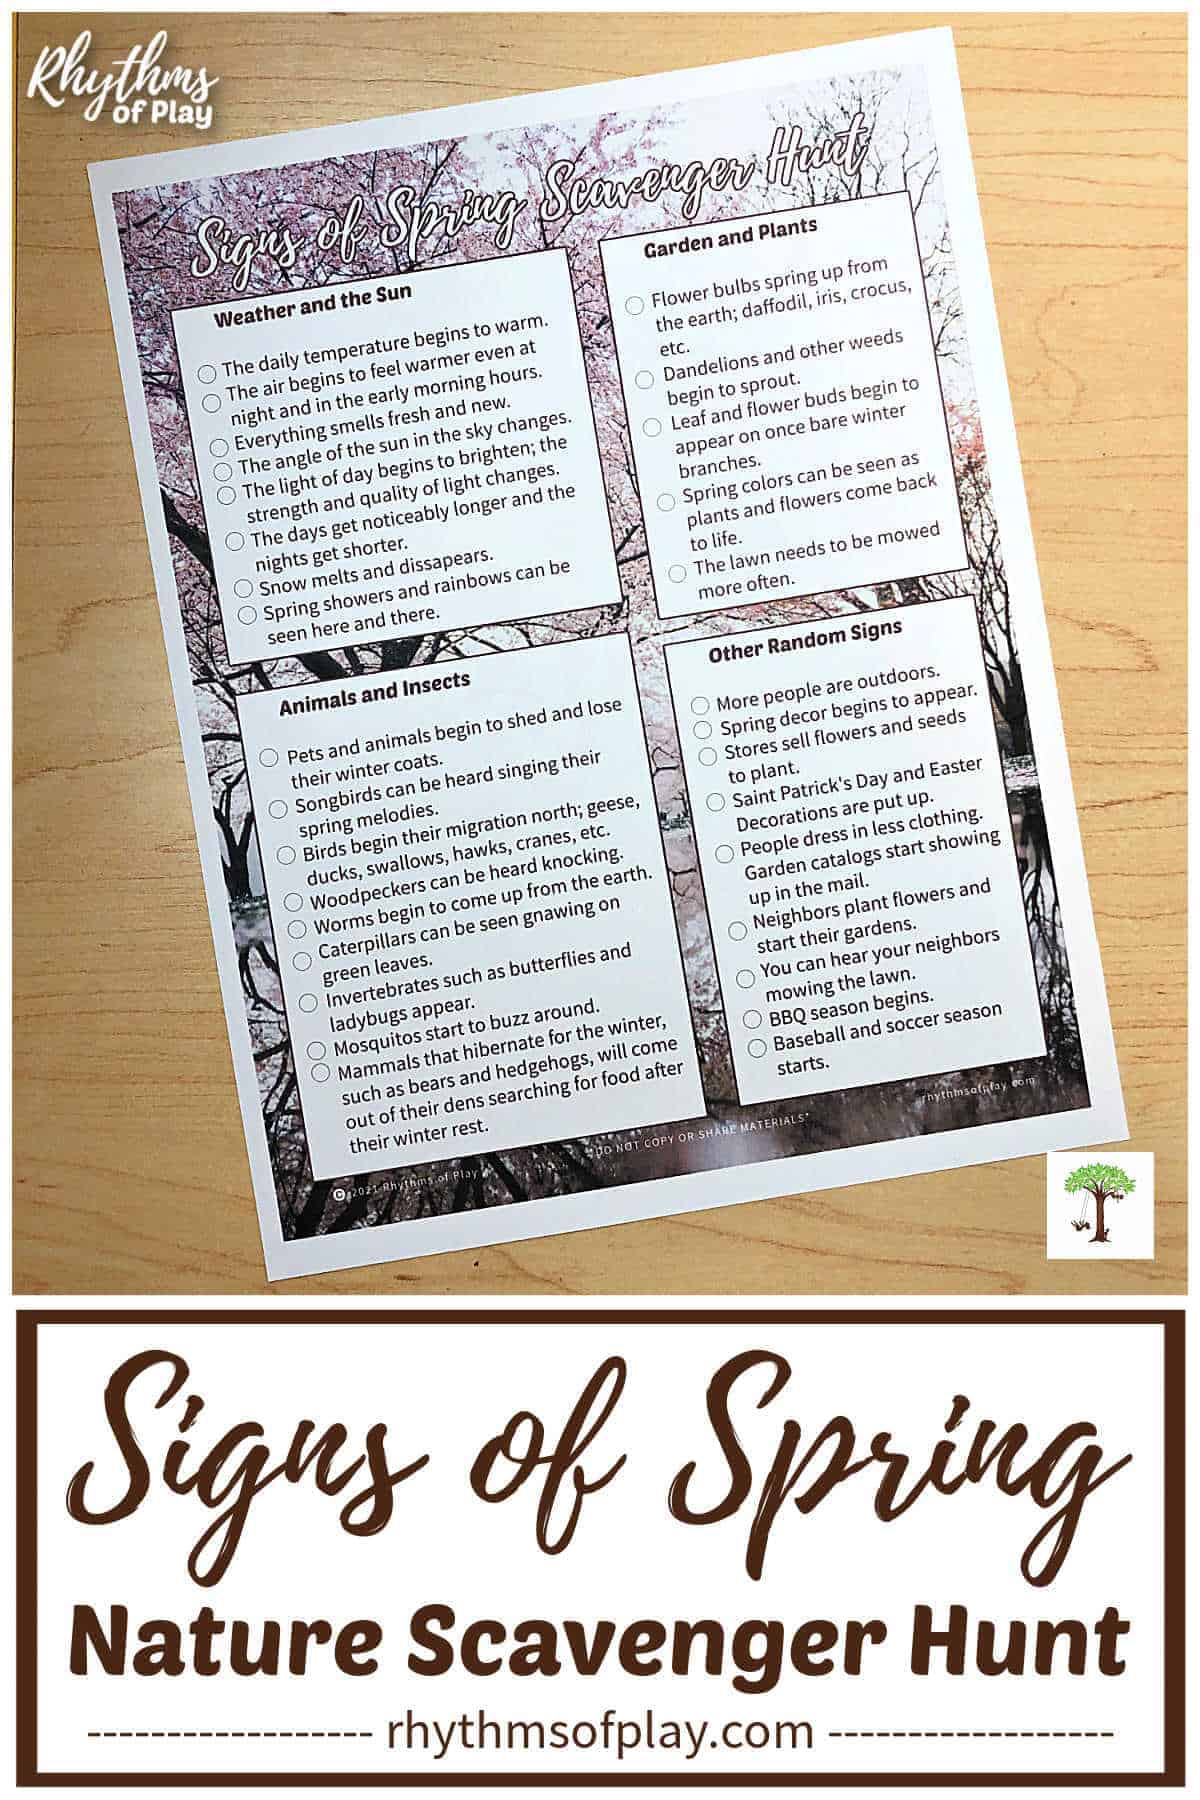 Picture of signs of spring scavenger hunt printable on table